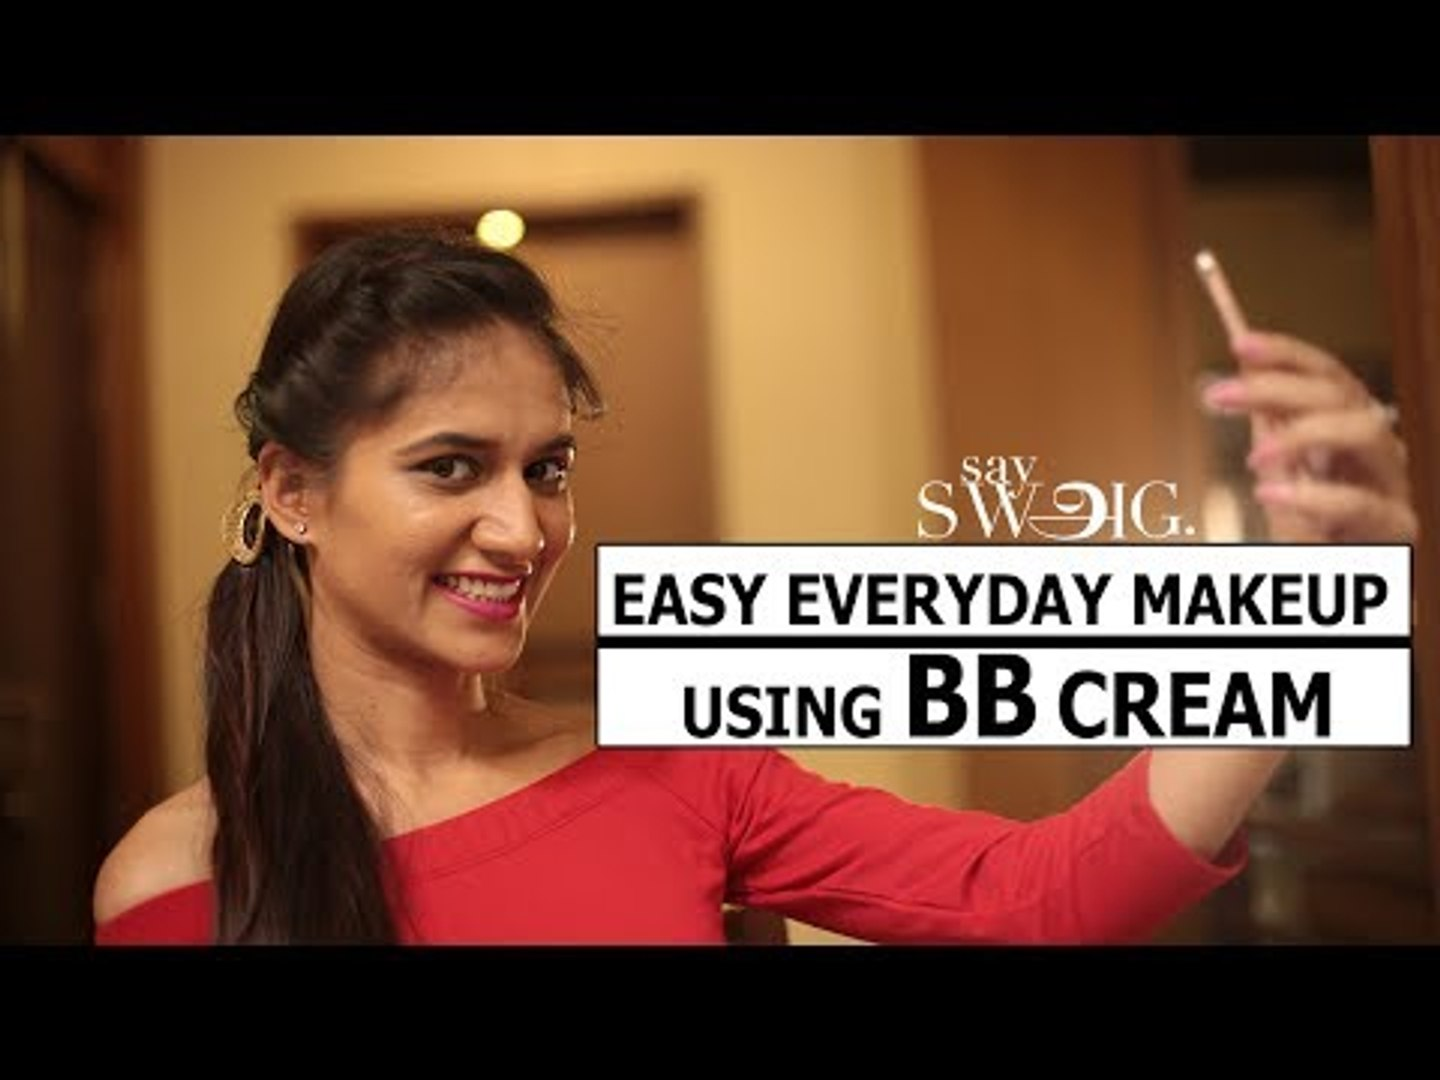 Daily routine makeup using BB(Beauty Balm) Cream | Makeup Tips | Say Swag